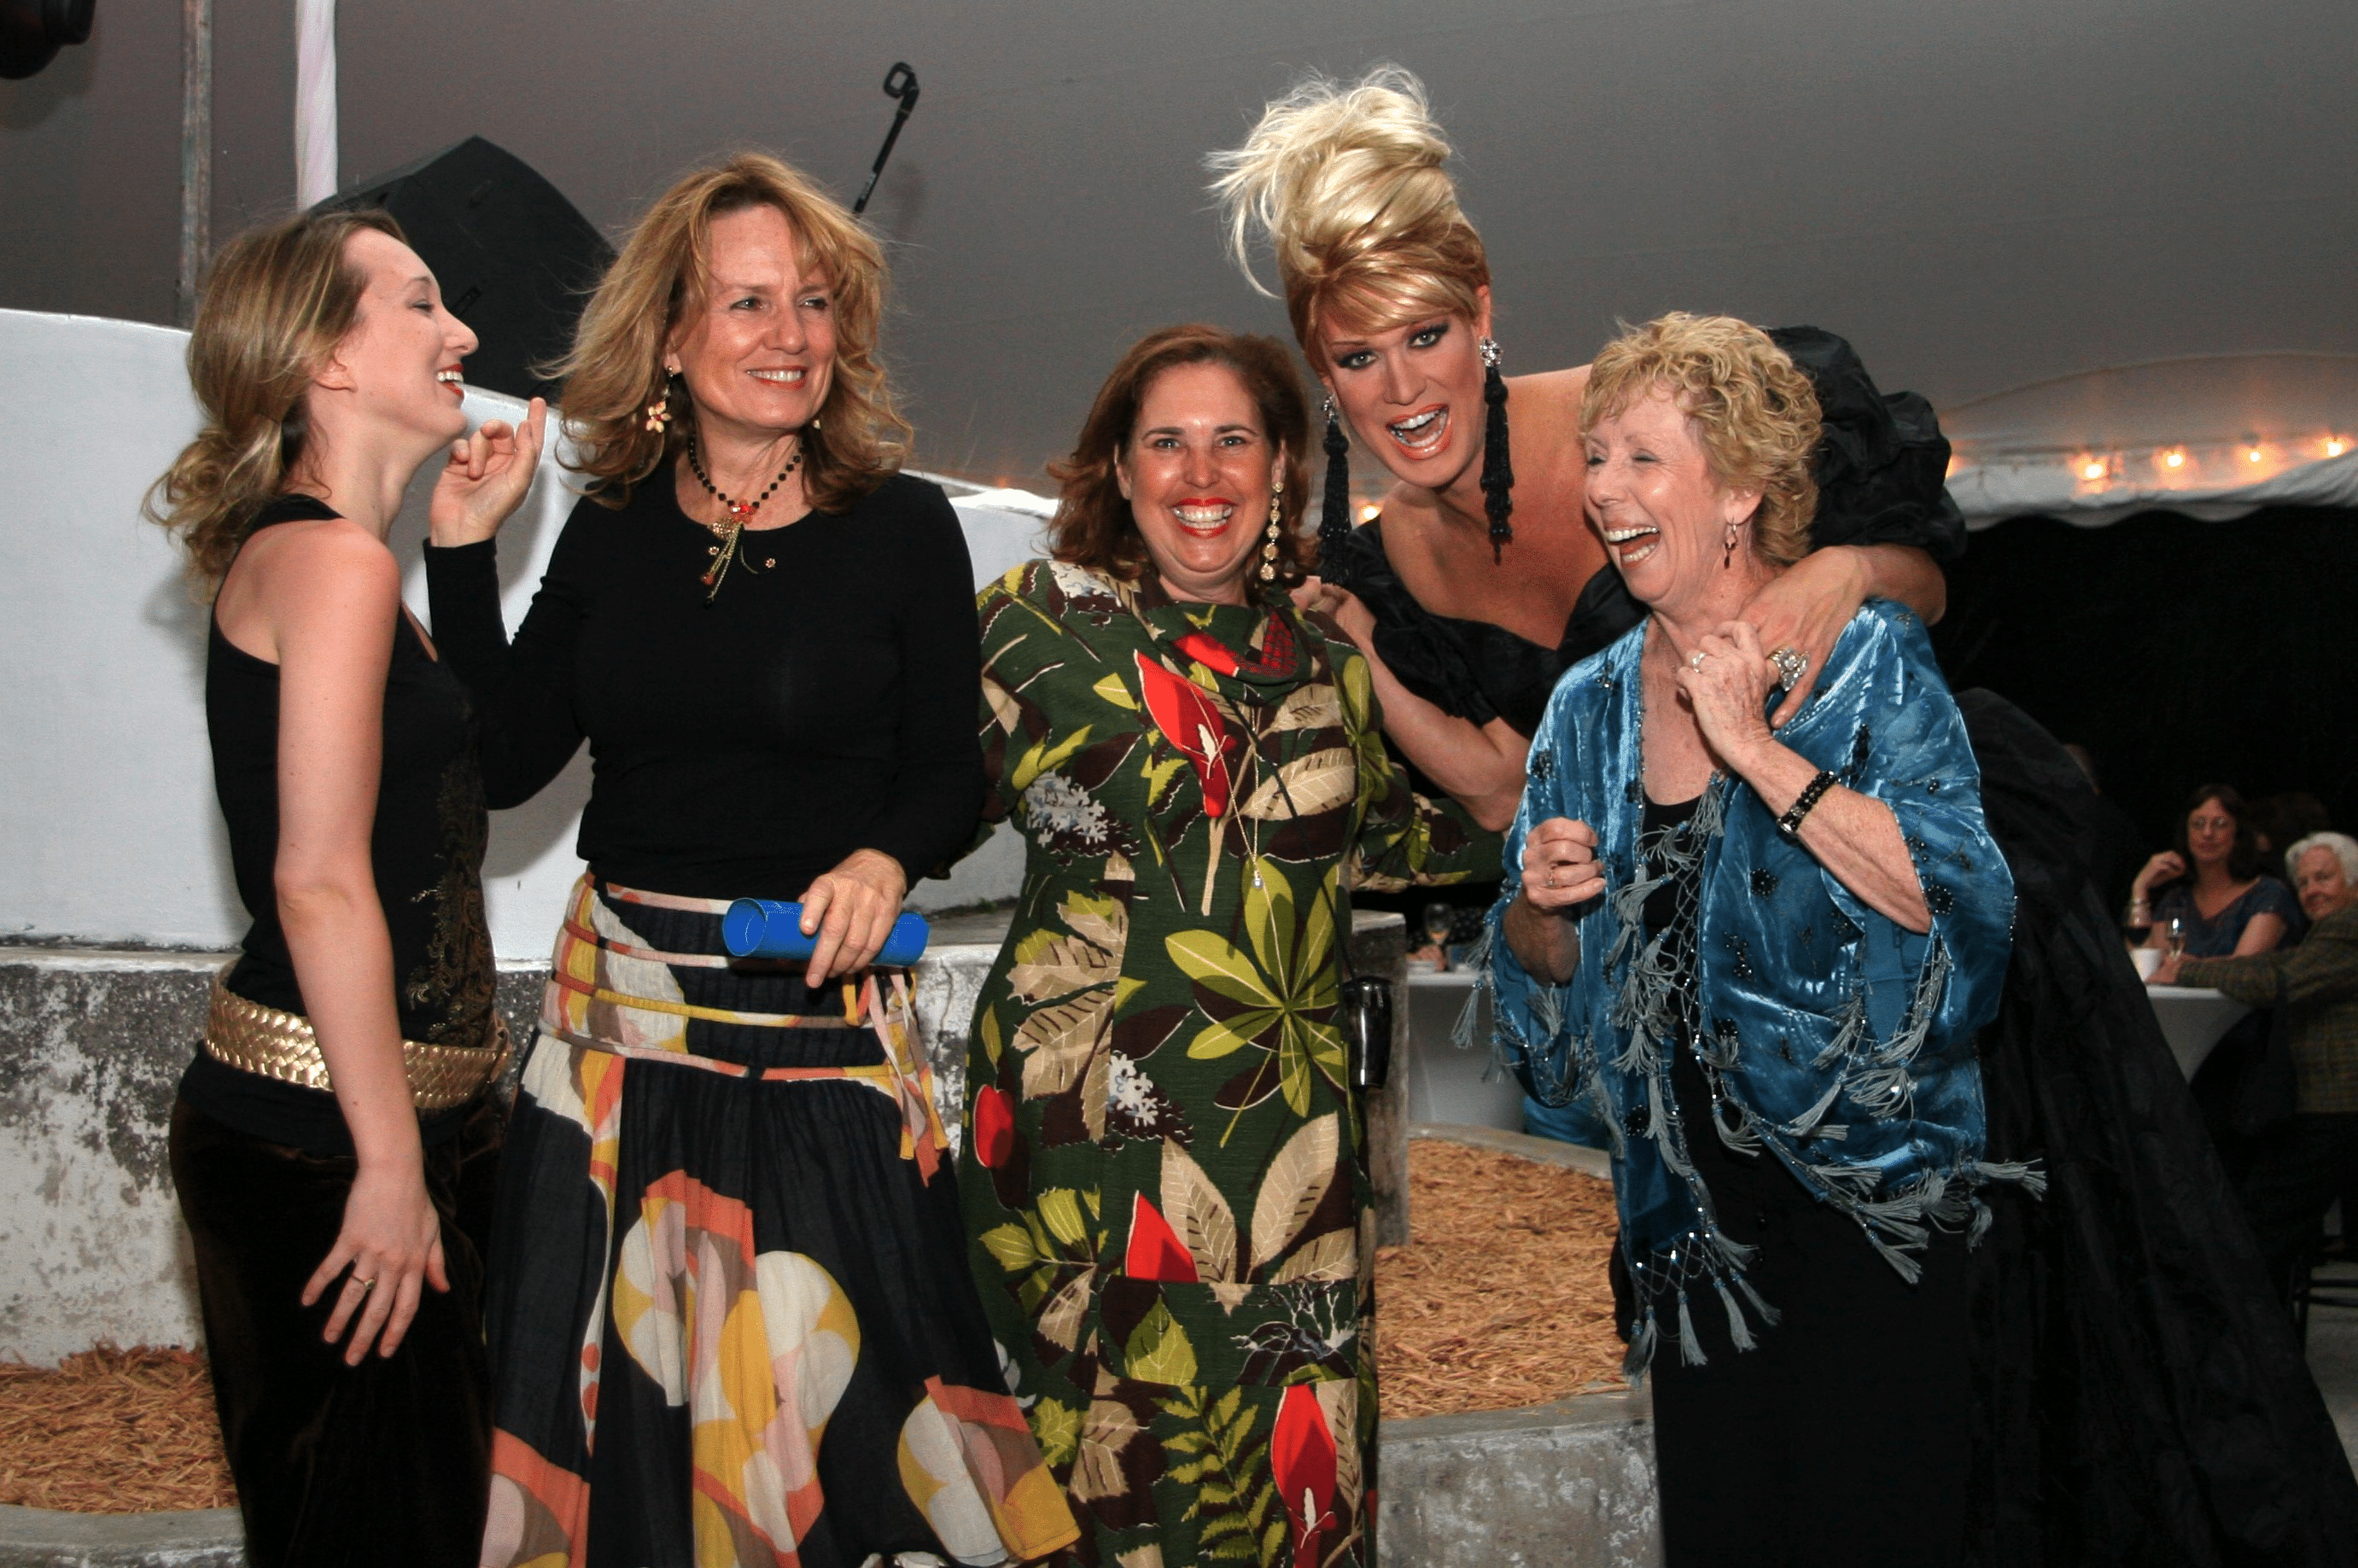 Attendees at a fundraiser event